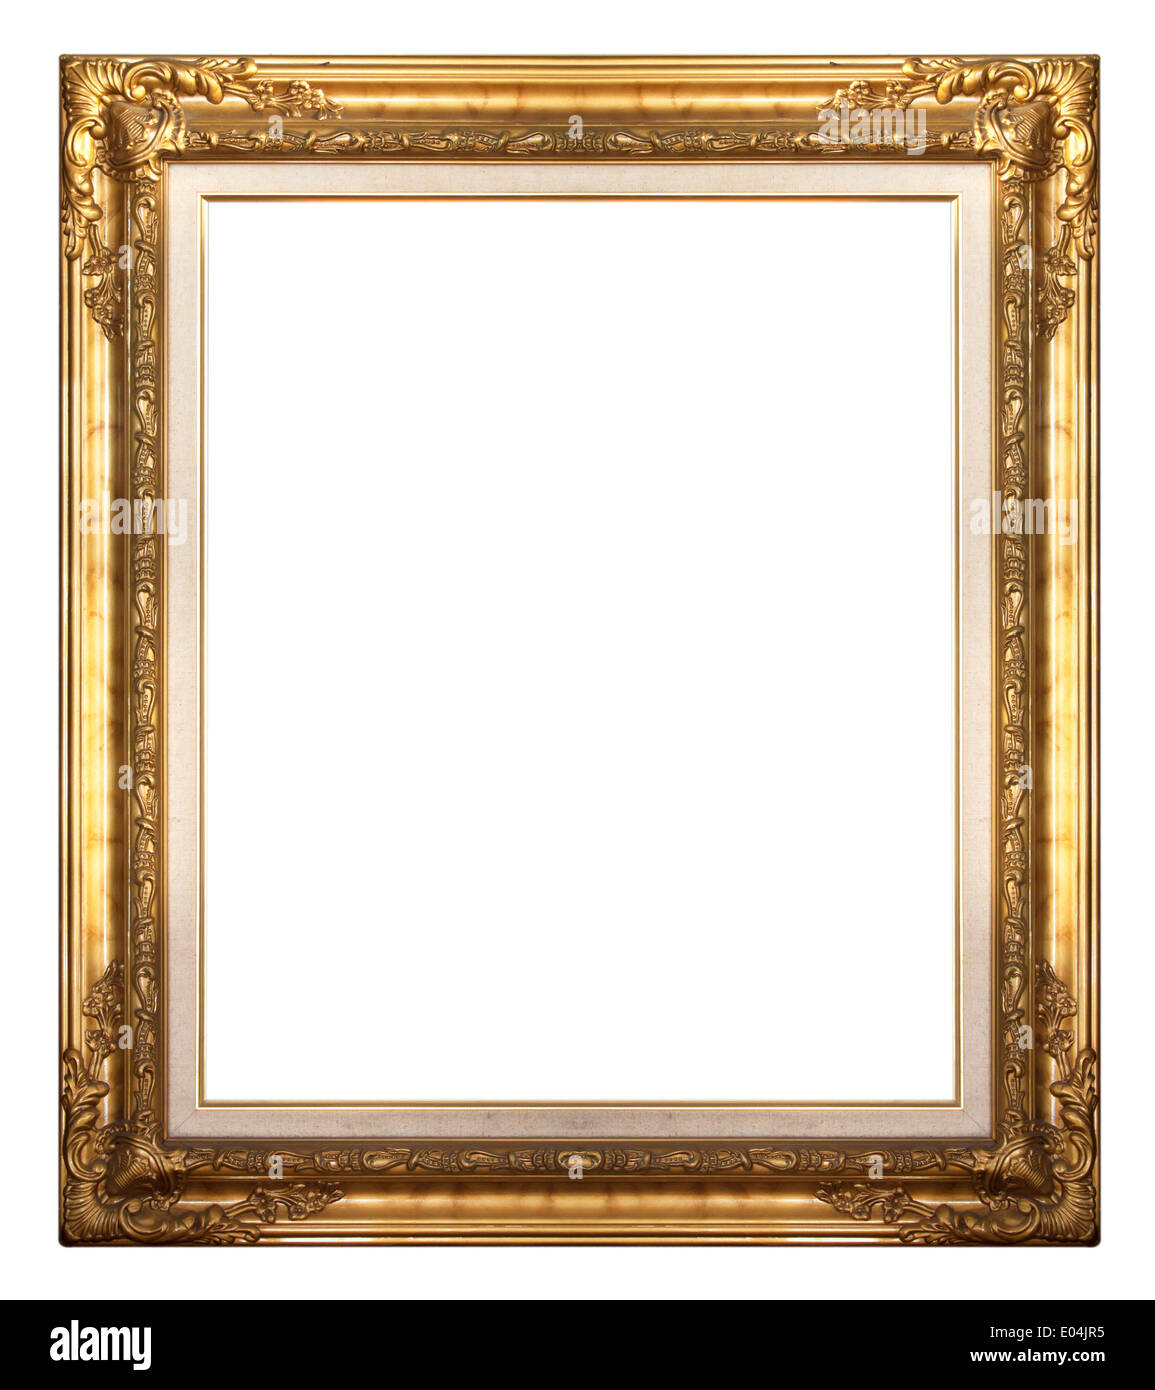 Oval Picture Frame Stockfotos & Oval Picture Frame Bilder - Alamy